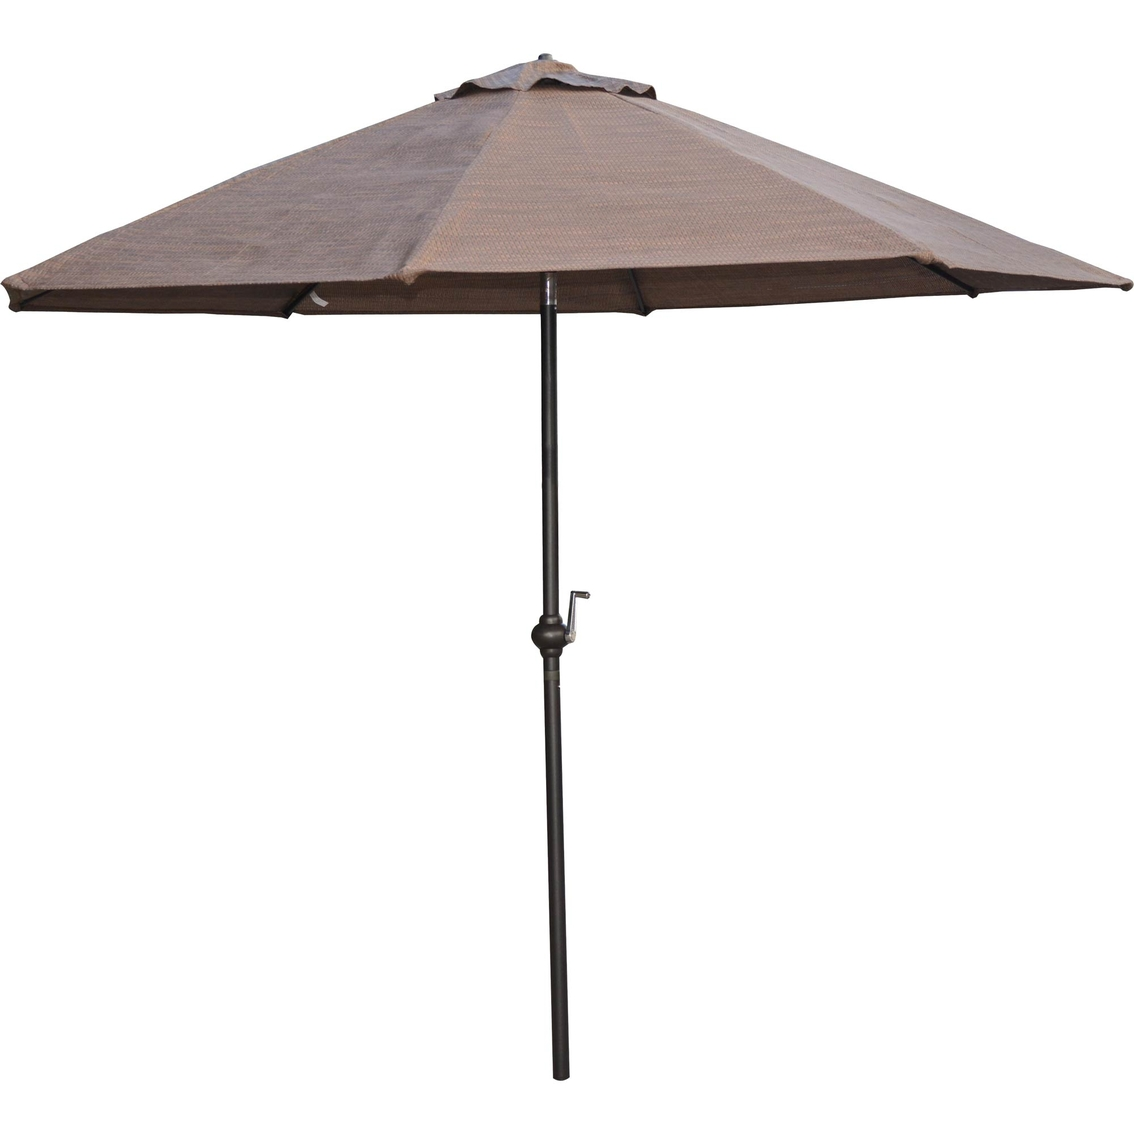 Patio tables with umbrellas folding outdoor picnic table for Patio table and umbrella sets